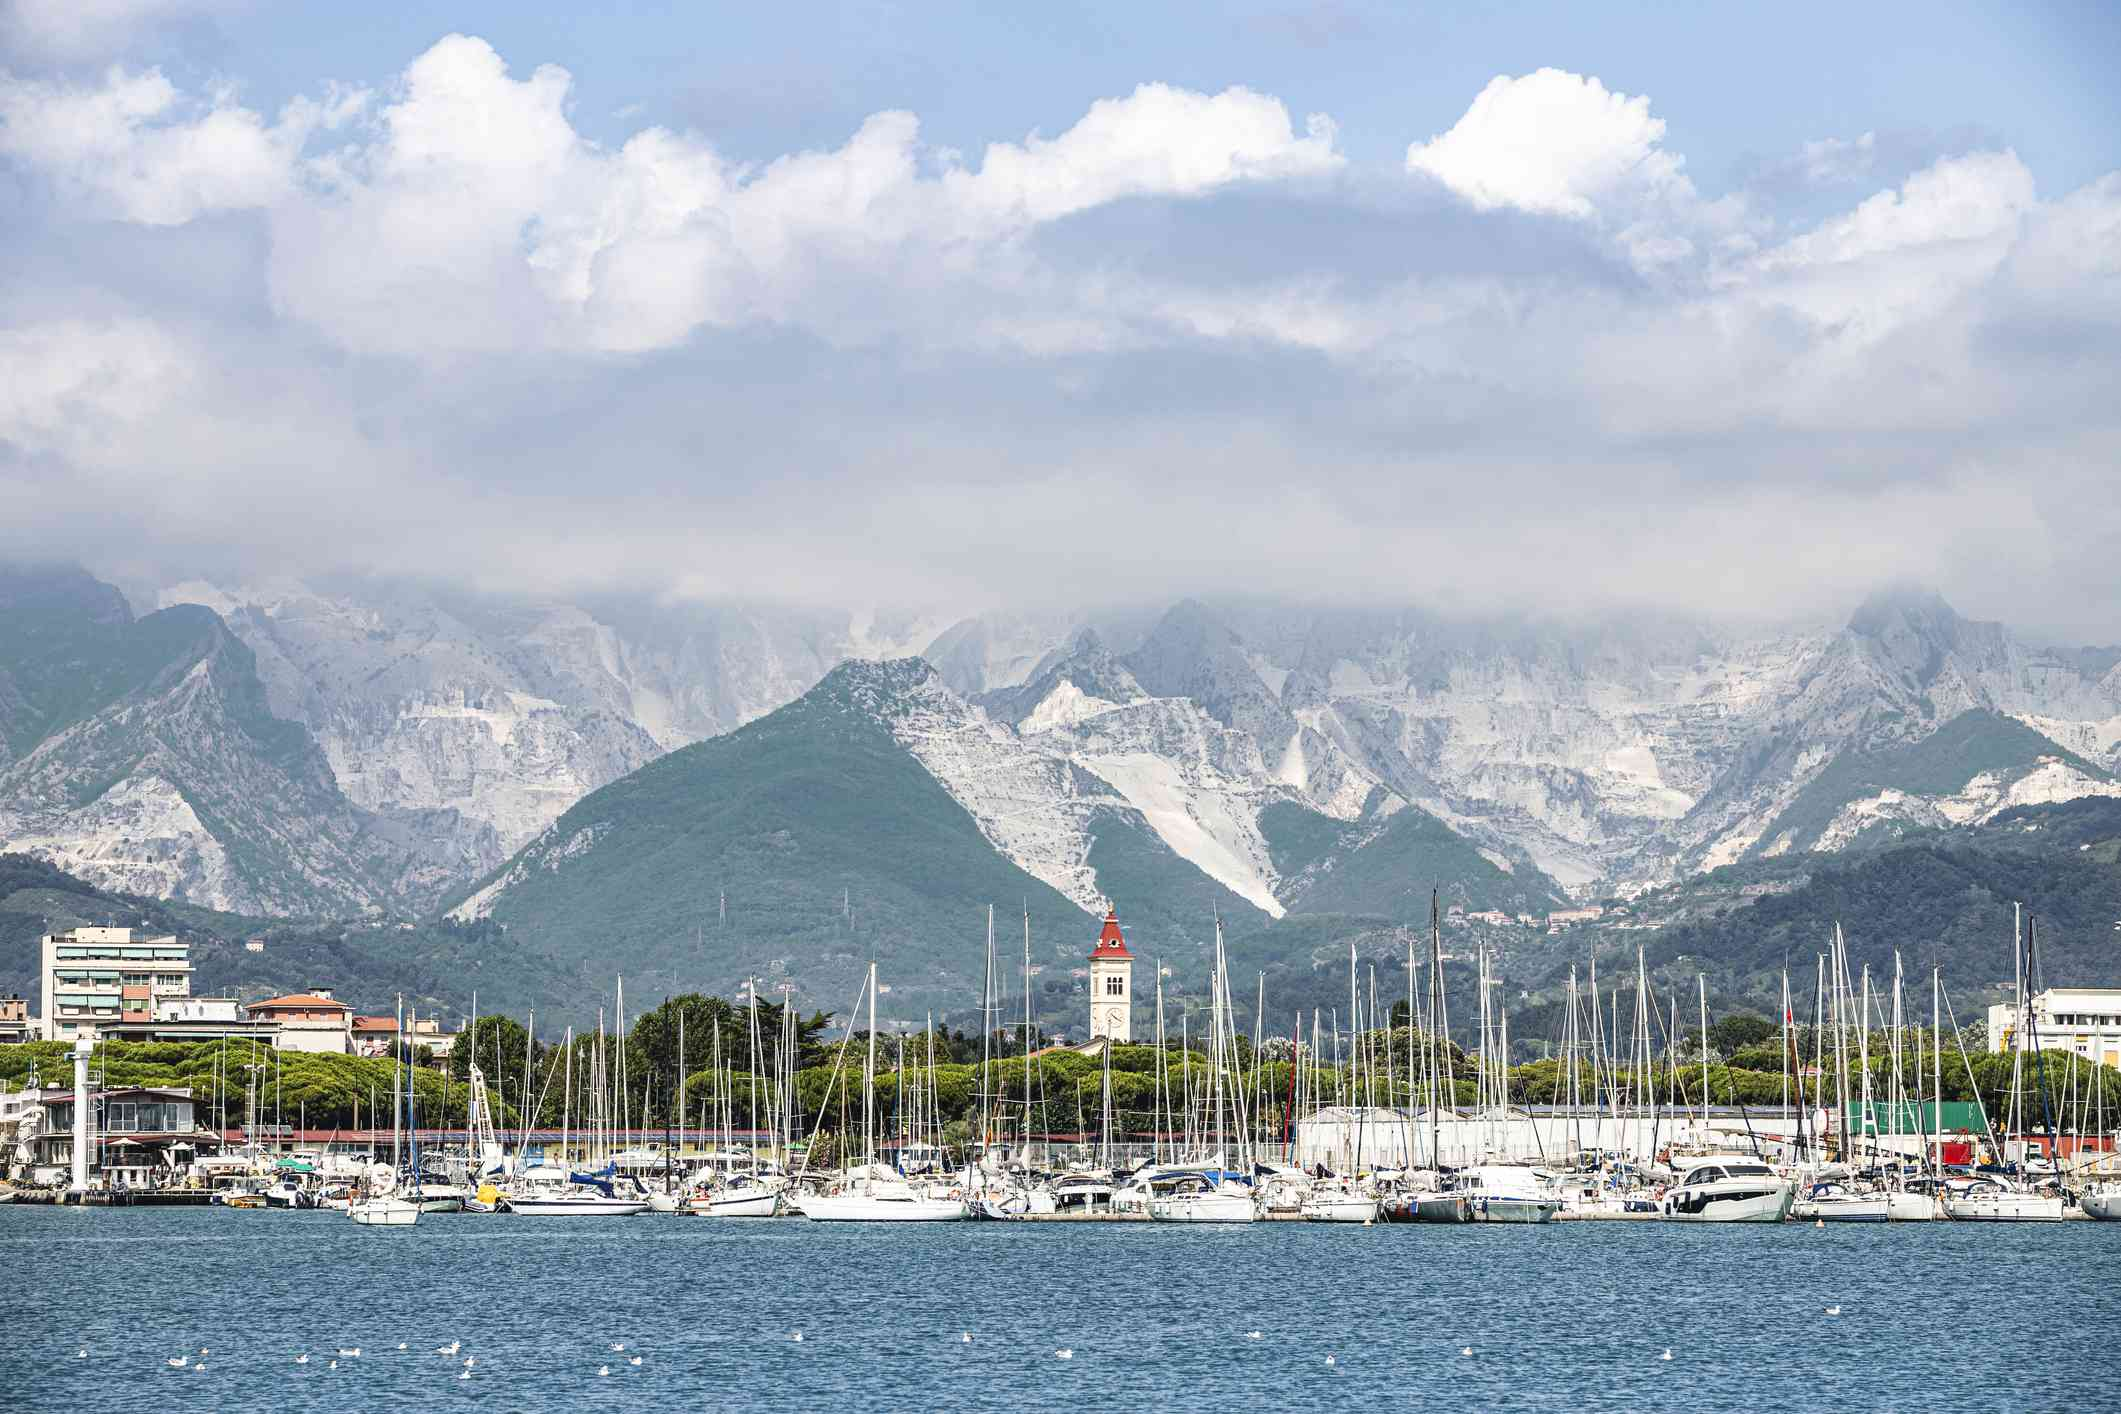 View of the shoreline at Marina di Carrara with marble quarries in the background